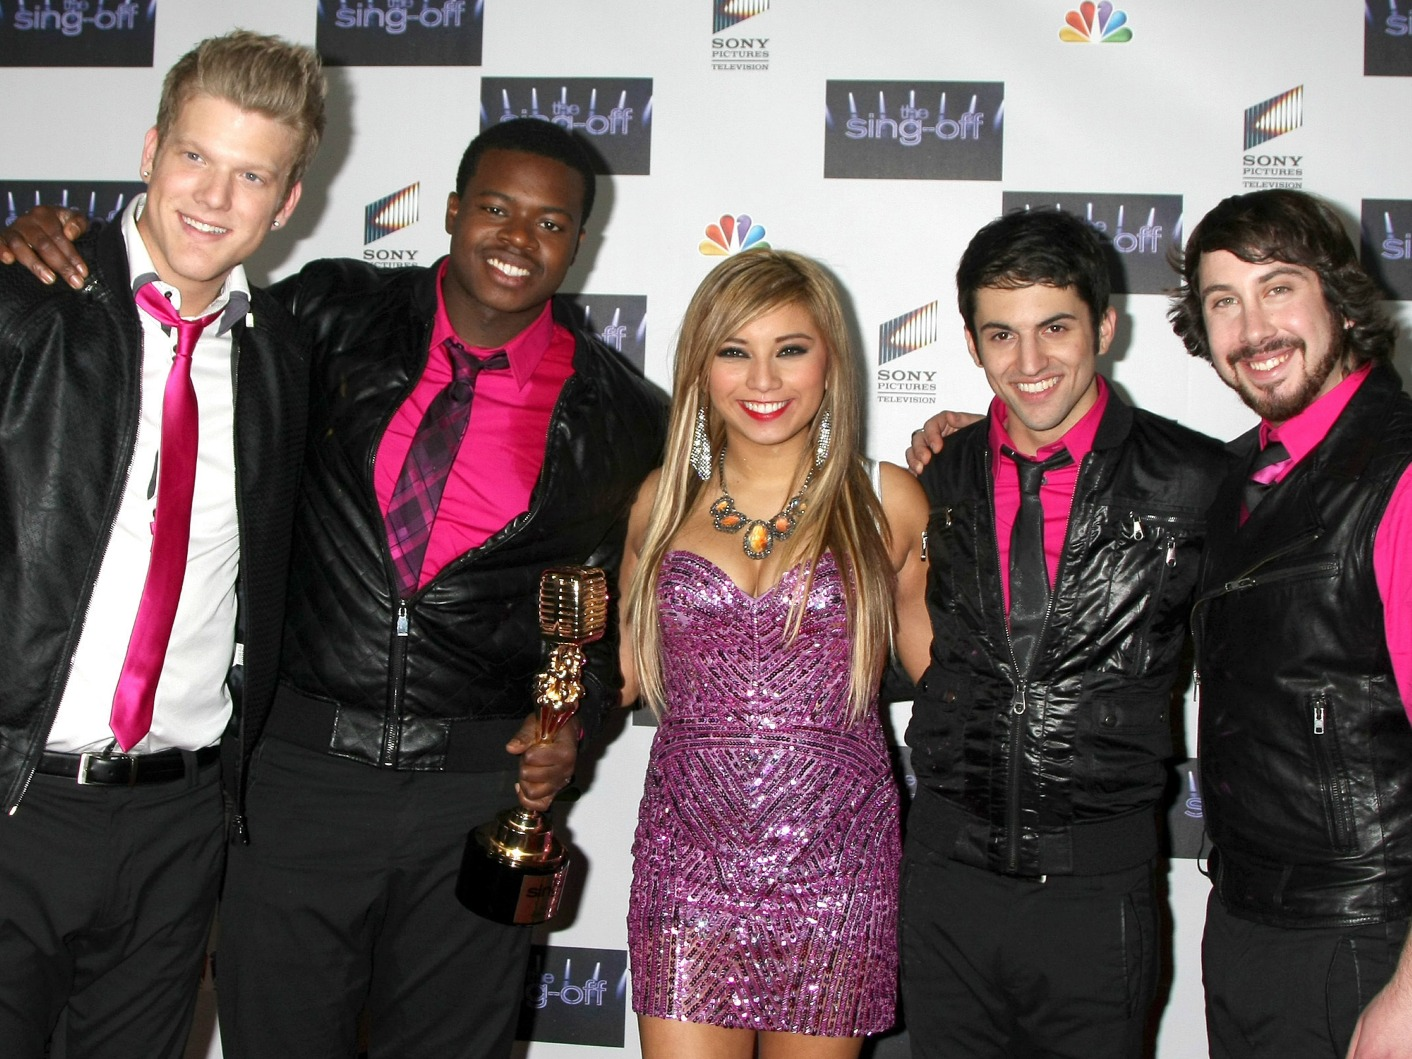 10 Things you didn't know about Pentatonix